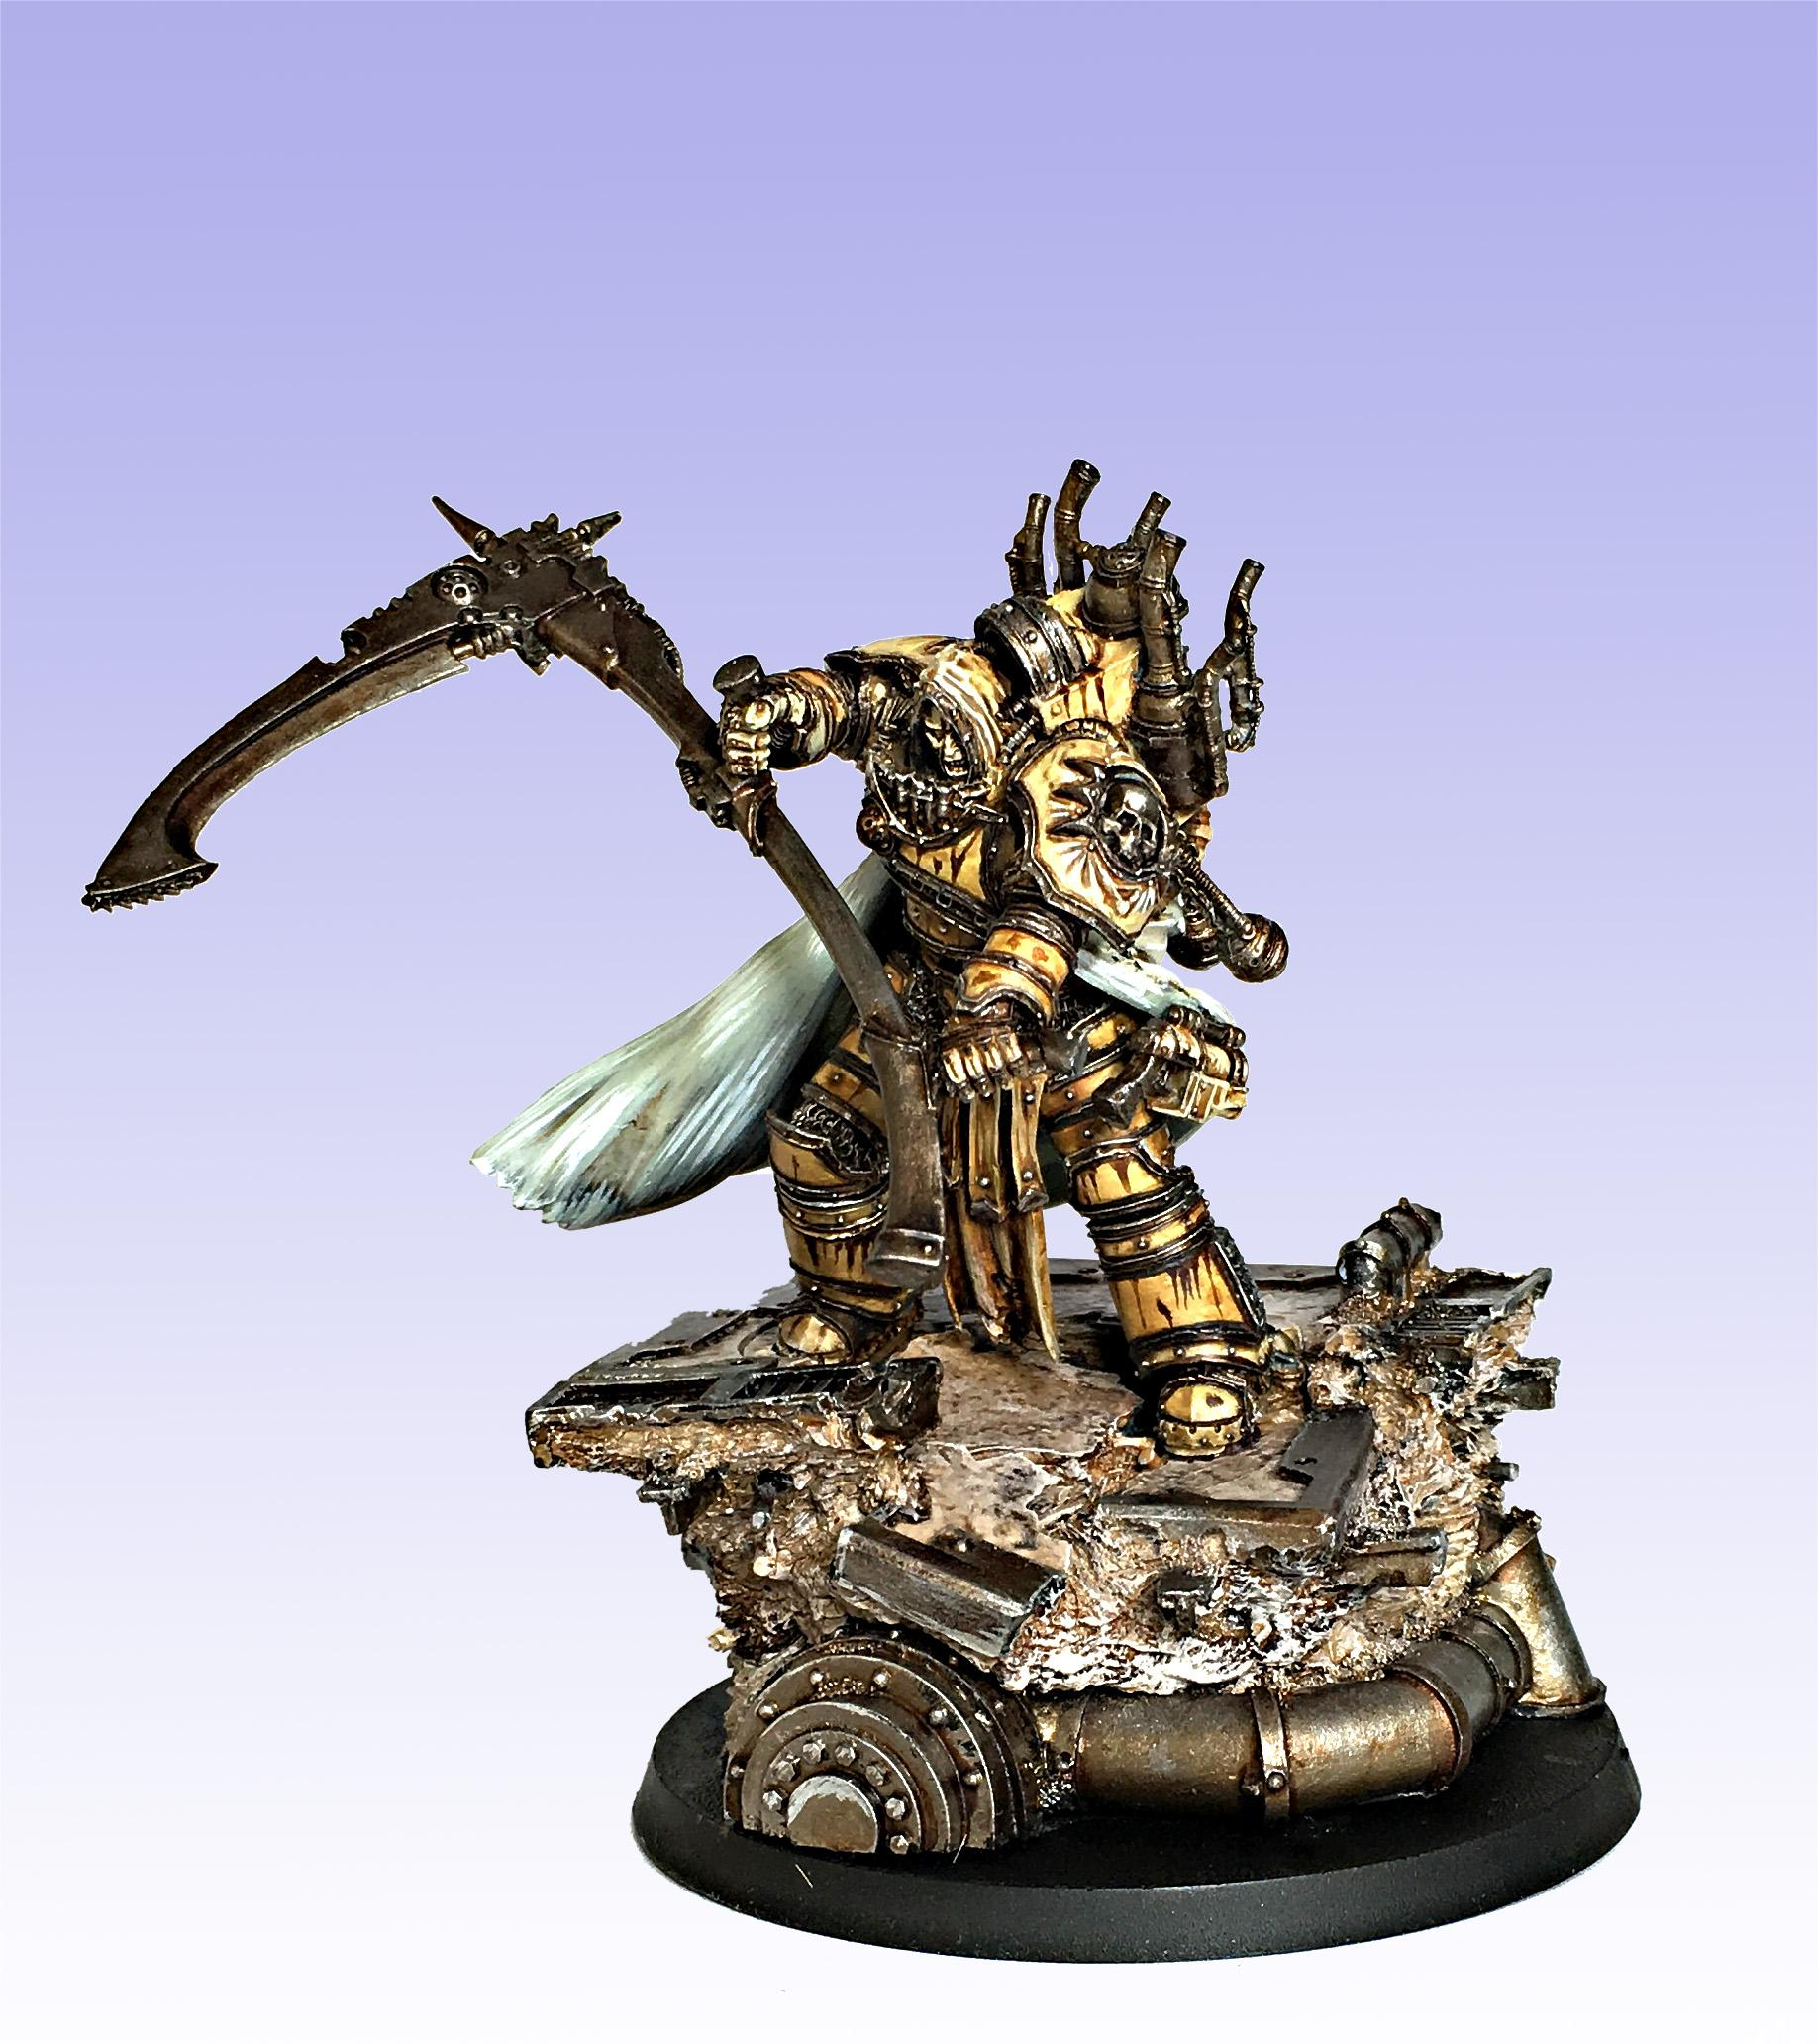 30k, Forge World, Horus Heresy, Mortarion, Nurgle, Primarch